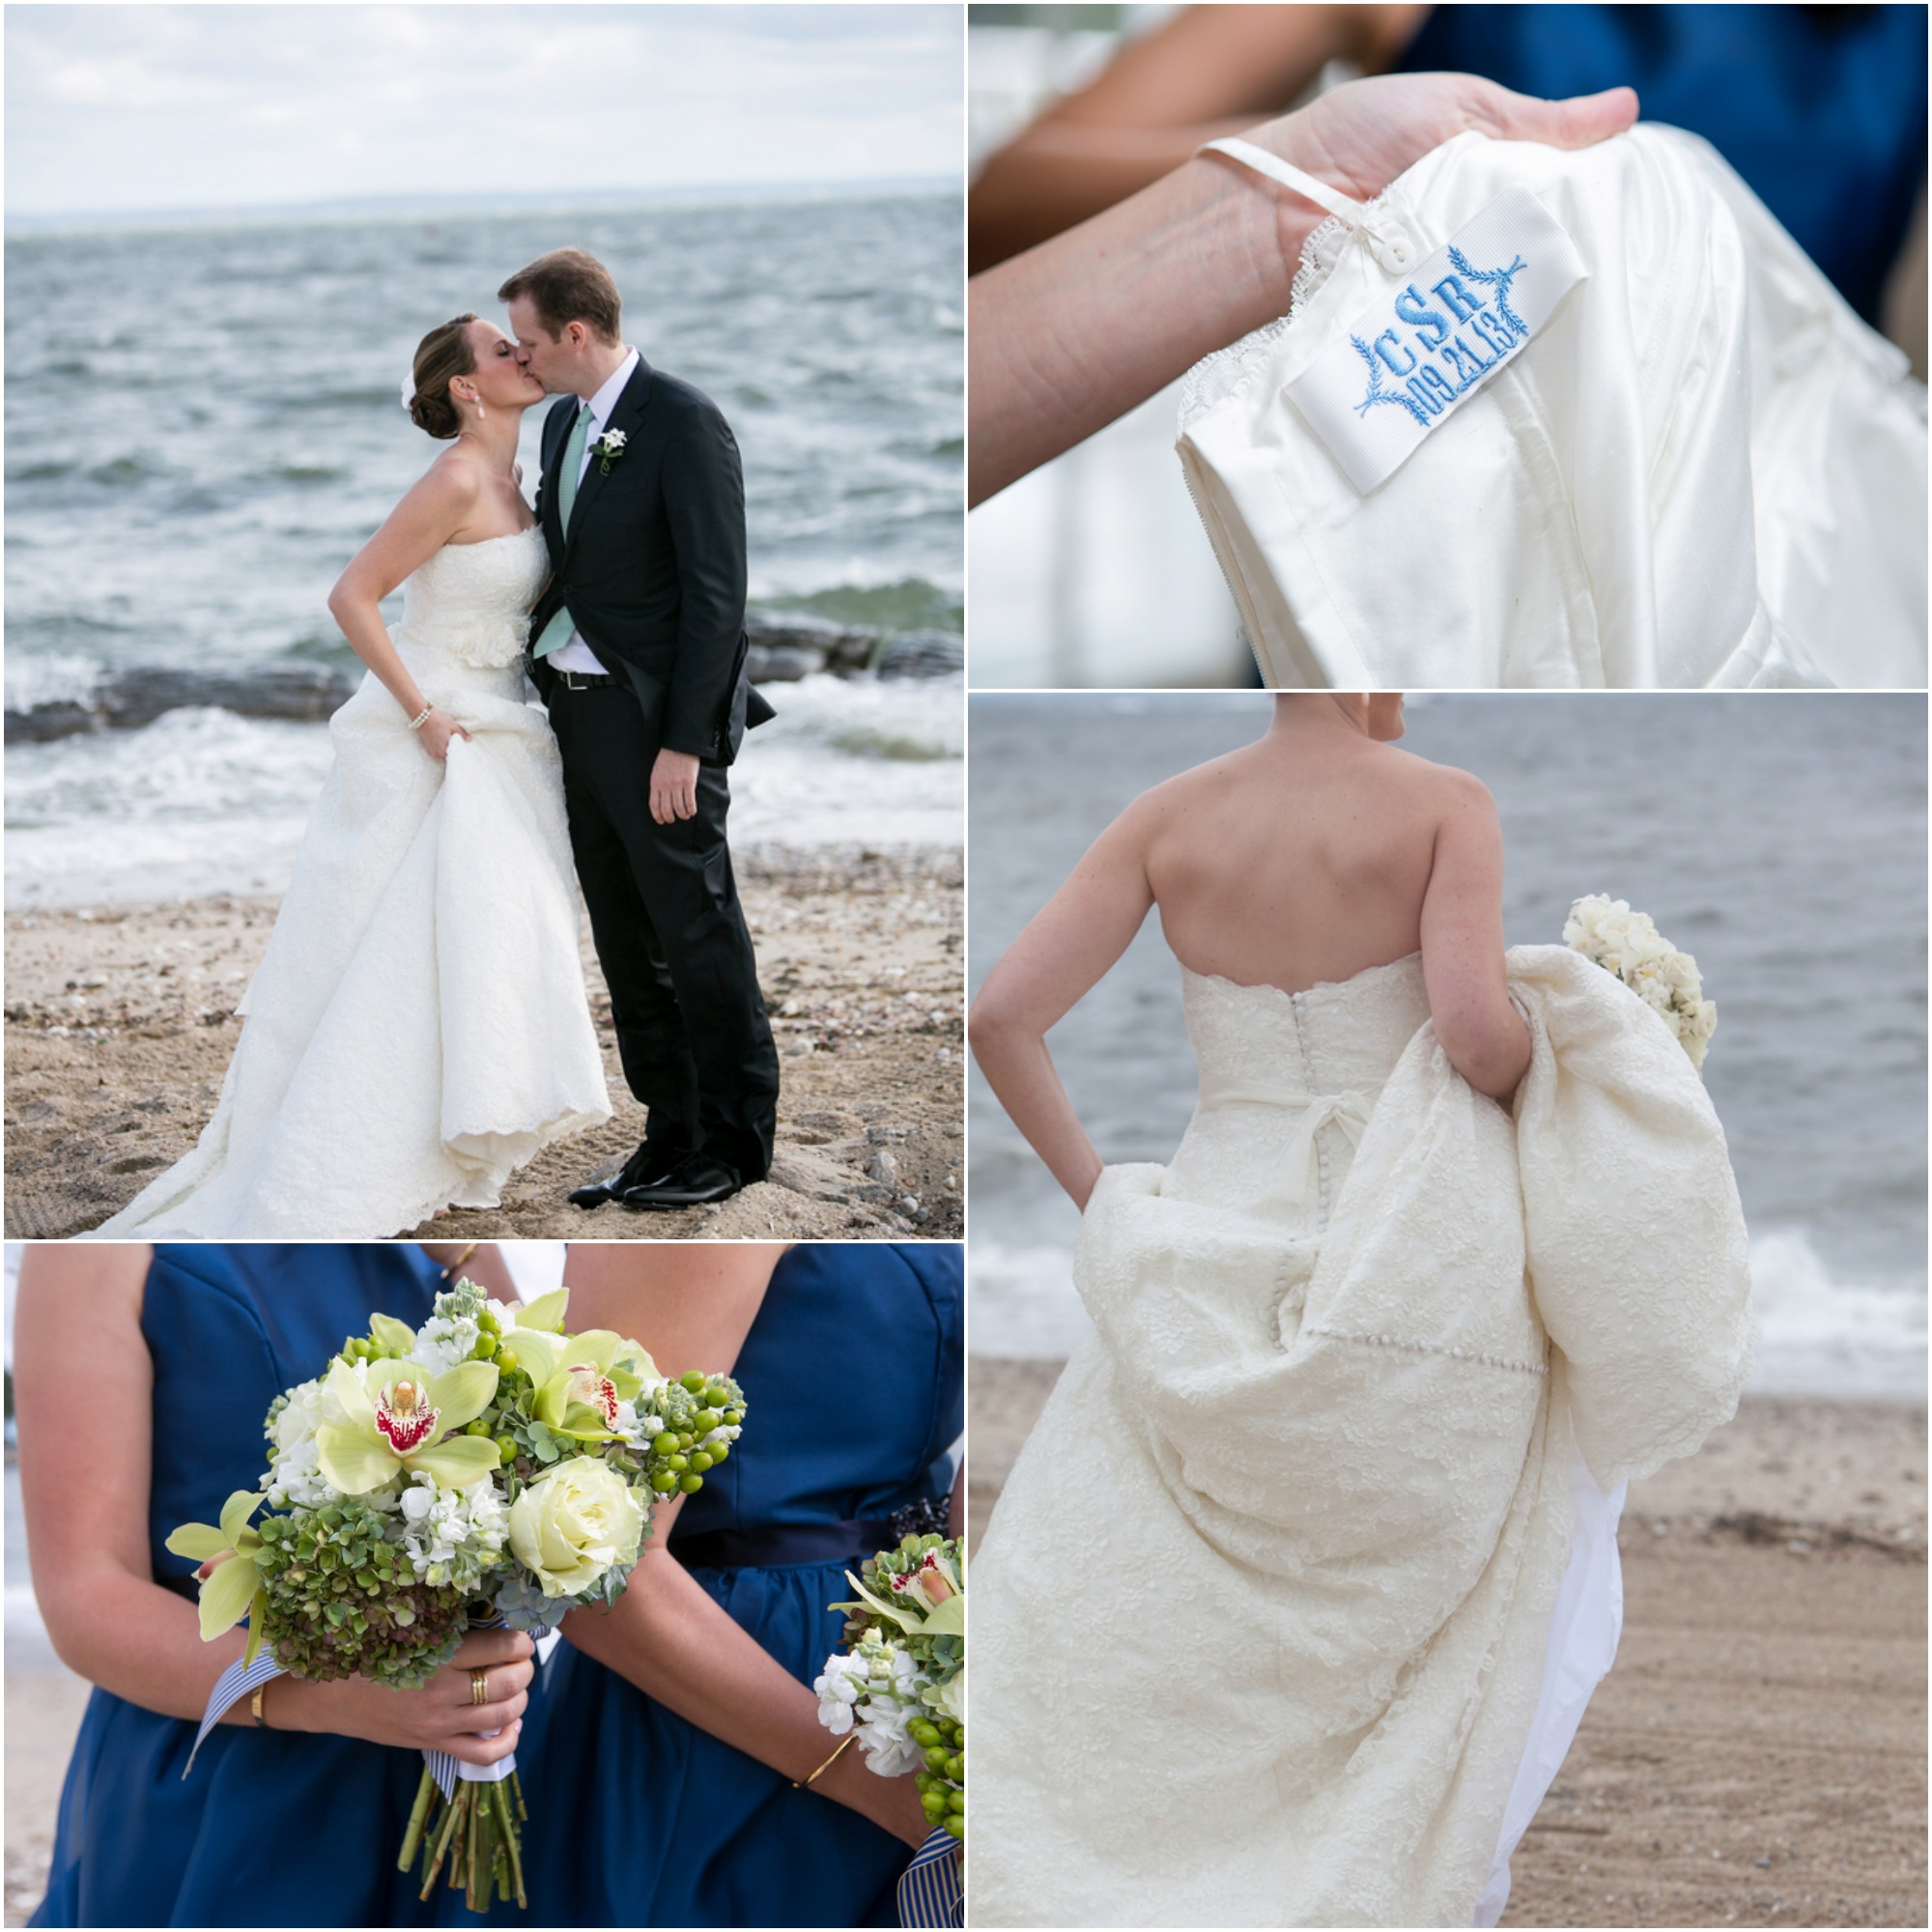 Vintage Wedding Dresses Miami: Preppy Beach Wedding With Blue Colors